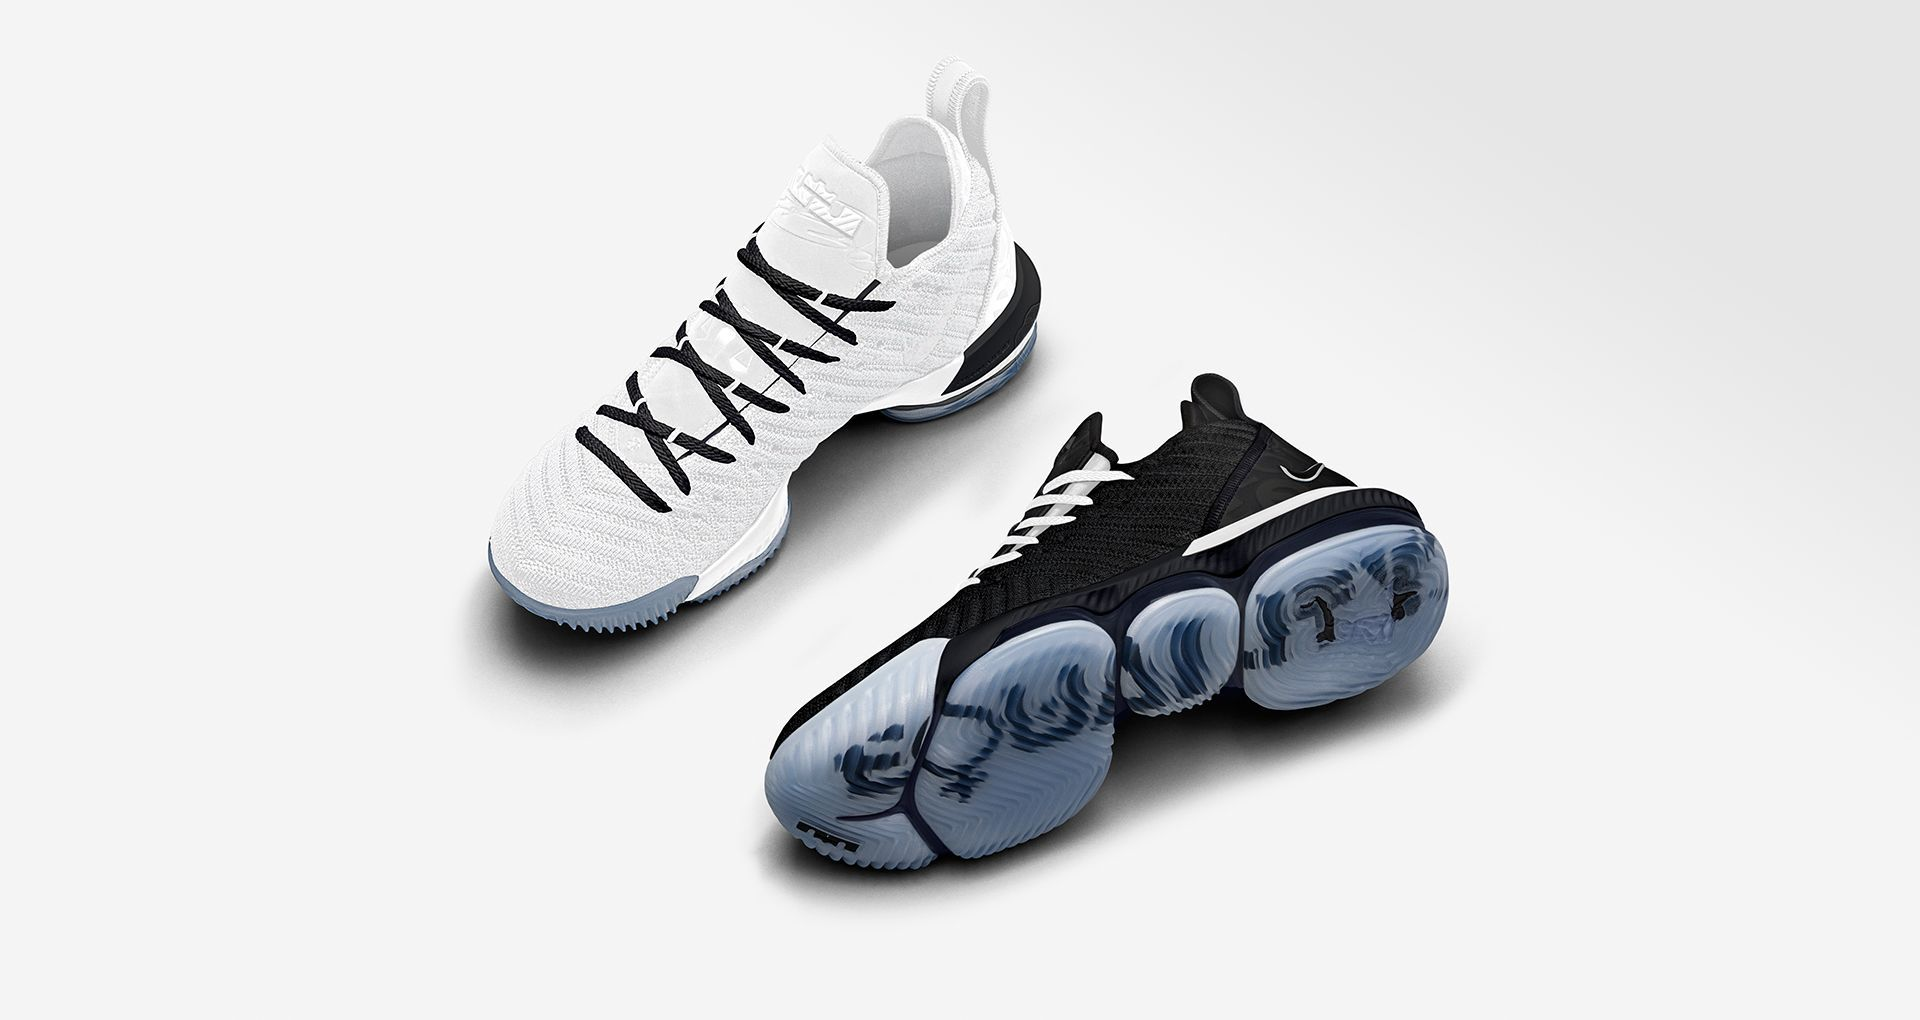 new product 6b771 785fb Lebron 16 Equality 2019 'Black & White' Release Date | Wish ...